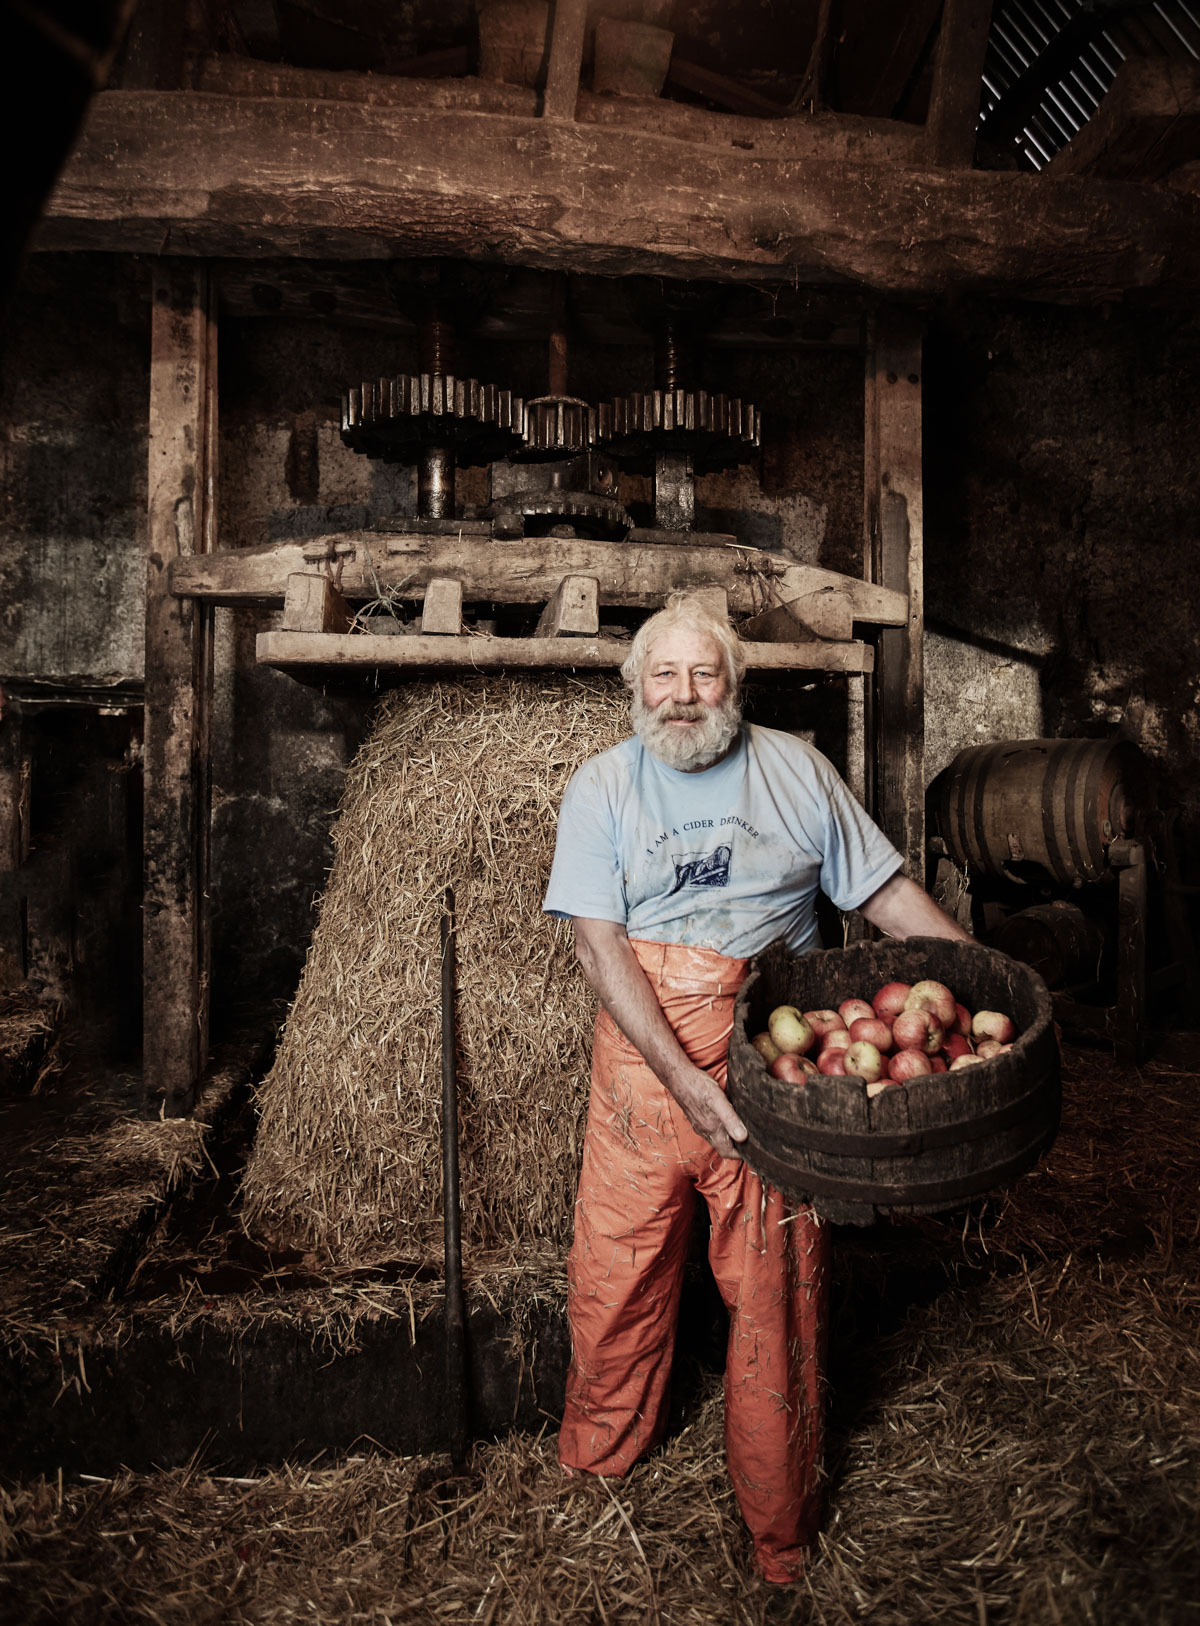 Ron Barter / Cider Maker / Dunsford - Ron produces up to 1500 gallons of cider using one of the UK's oldest working cider presses, in a barn that dates back to Saxon times. Ron offers one-hour tours, showing you around these characterful historic buildings and explain how cider is produced using his traditional press, pictured above. There will be a chance to look around the orchards, where old and rare apple varieties still grow, including the wonderfully-titled Fair Maids of Devon, Pigs' Snout and Slack-ma-Girdle. There'll also be a chance to taste his cider, but beware - it's strong!